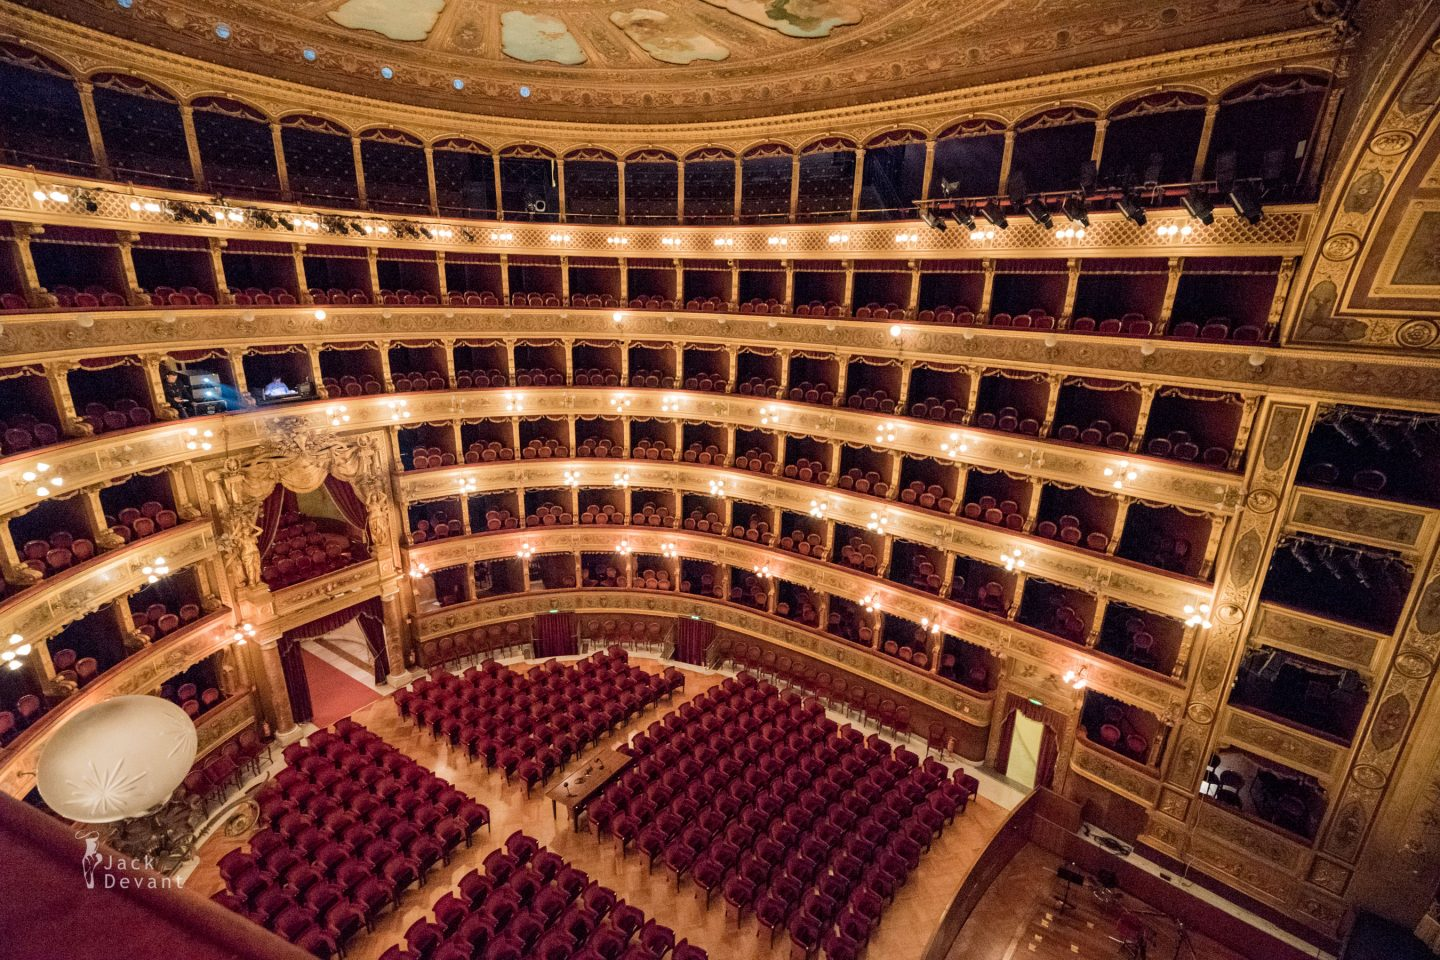 Teatro Massimo Palermo auditorium cealing paintings